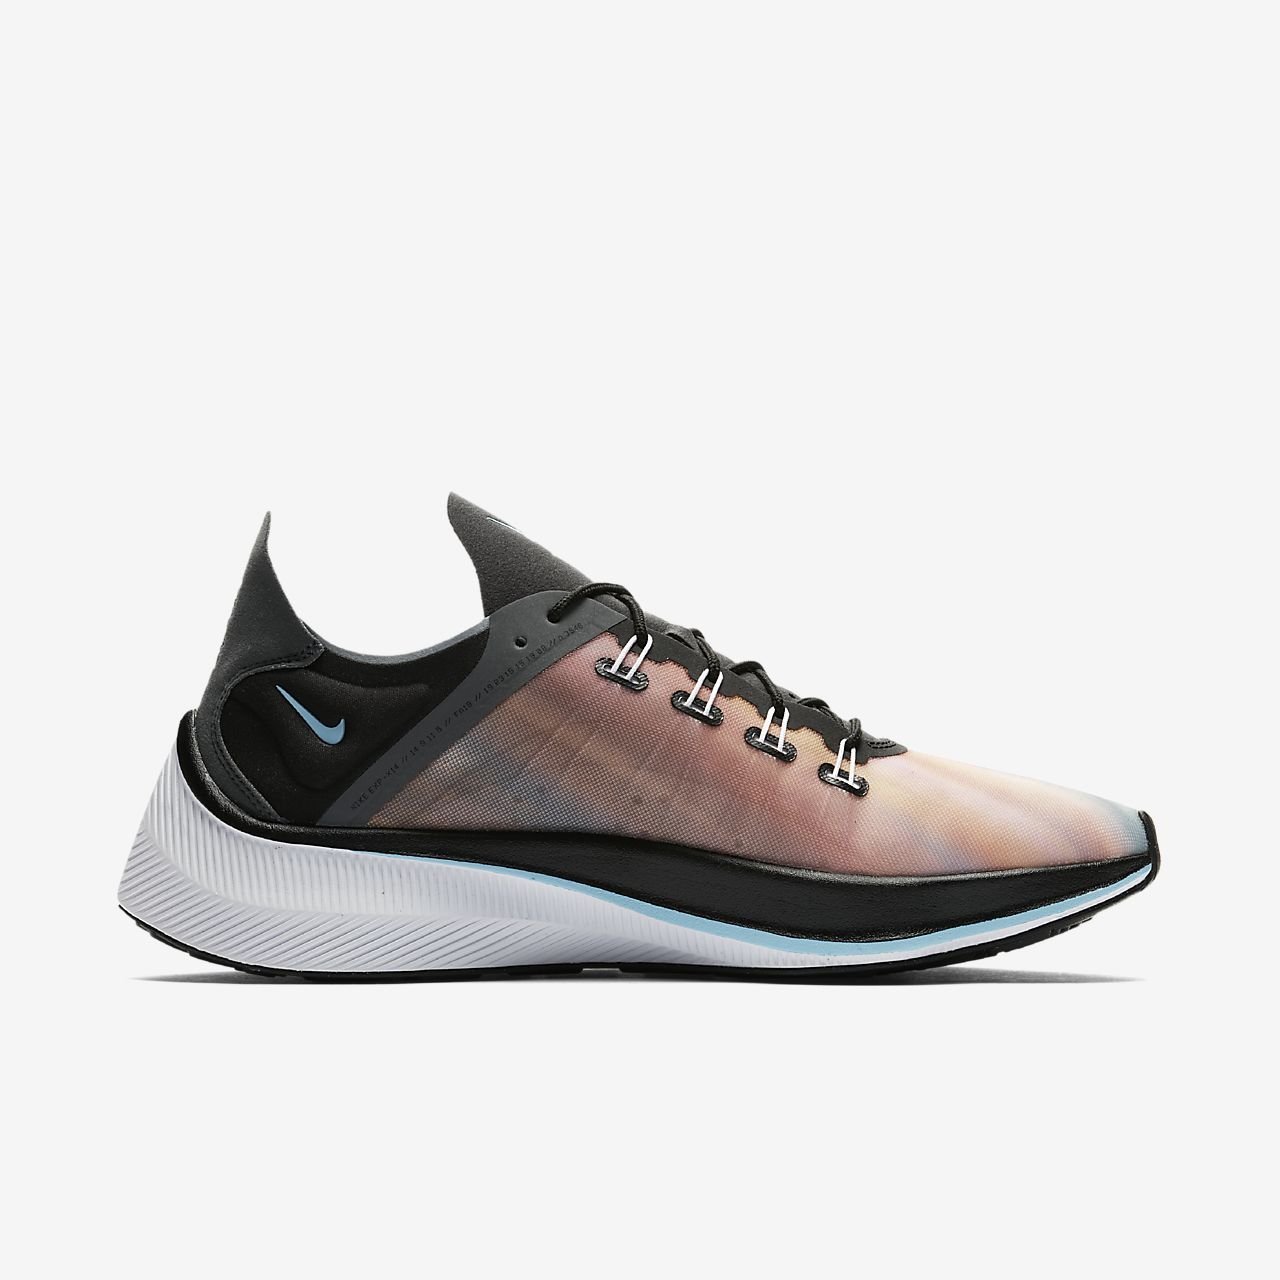 timeless design a122a 96be4 ... Nike EXP-X14 QS Men s Shoe